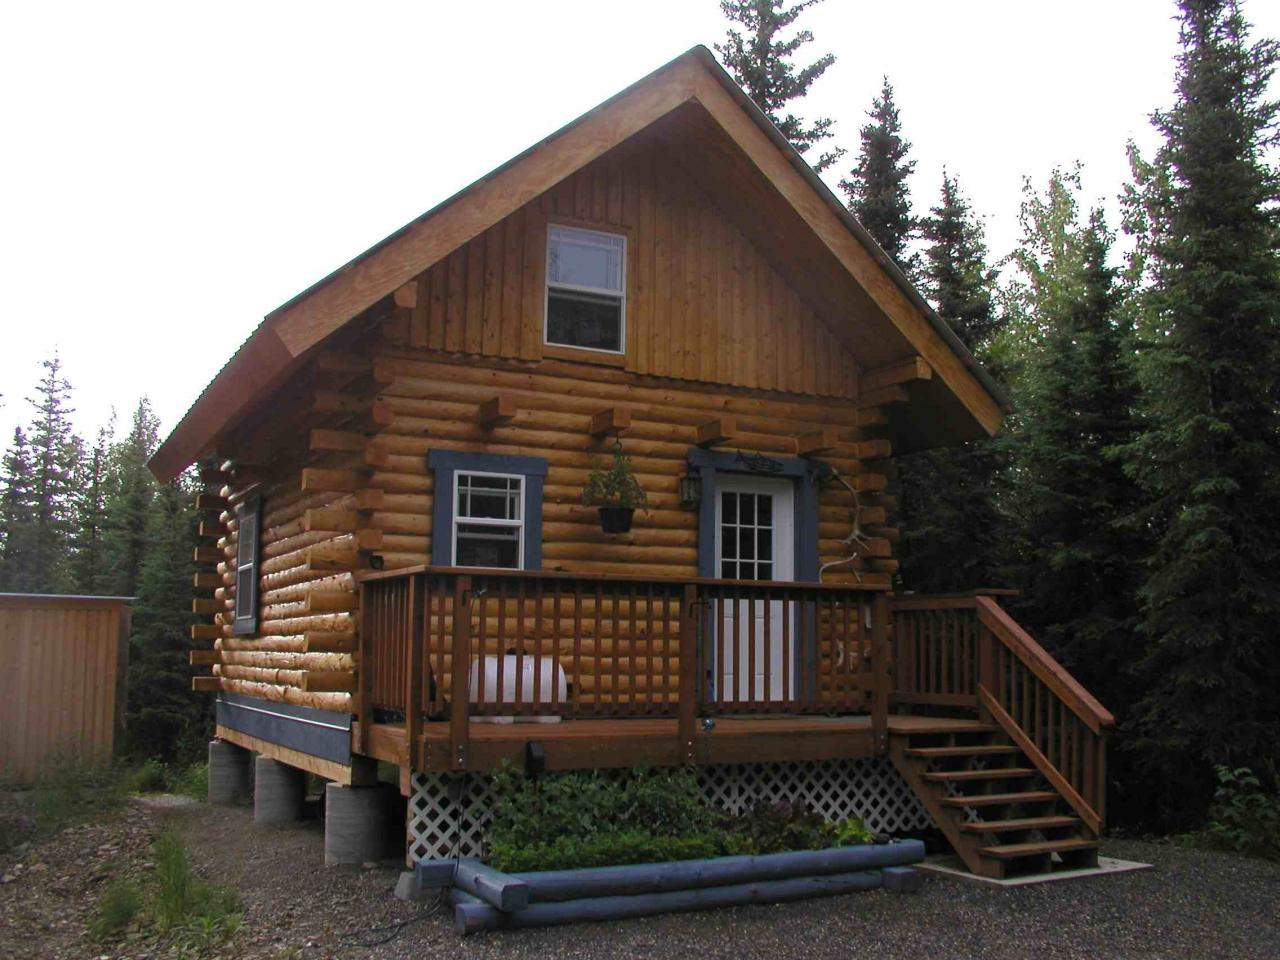 Fabulous Goldstream Cabins Construction Photos And Video Inspirational Interior Design Netriciaus